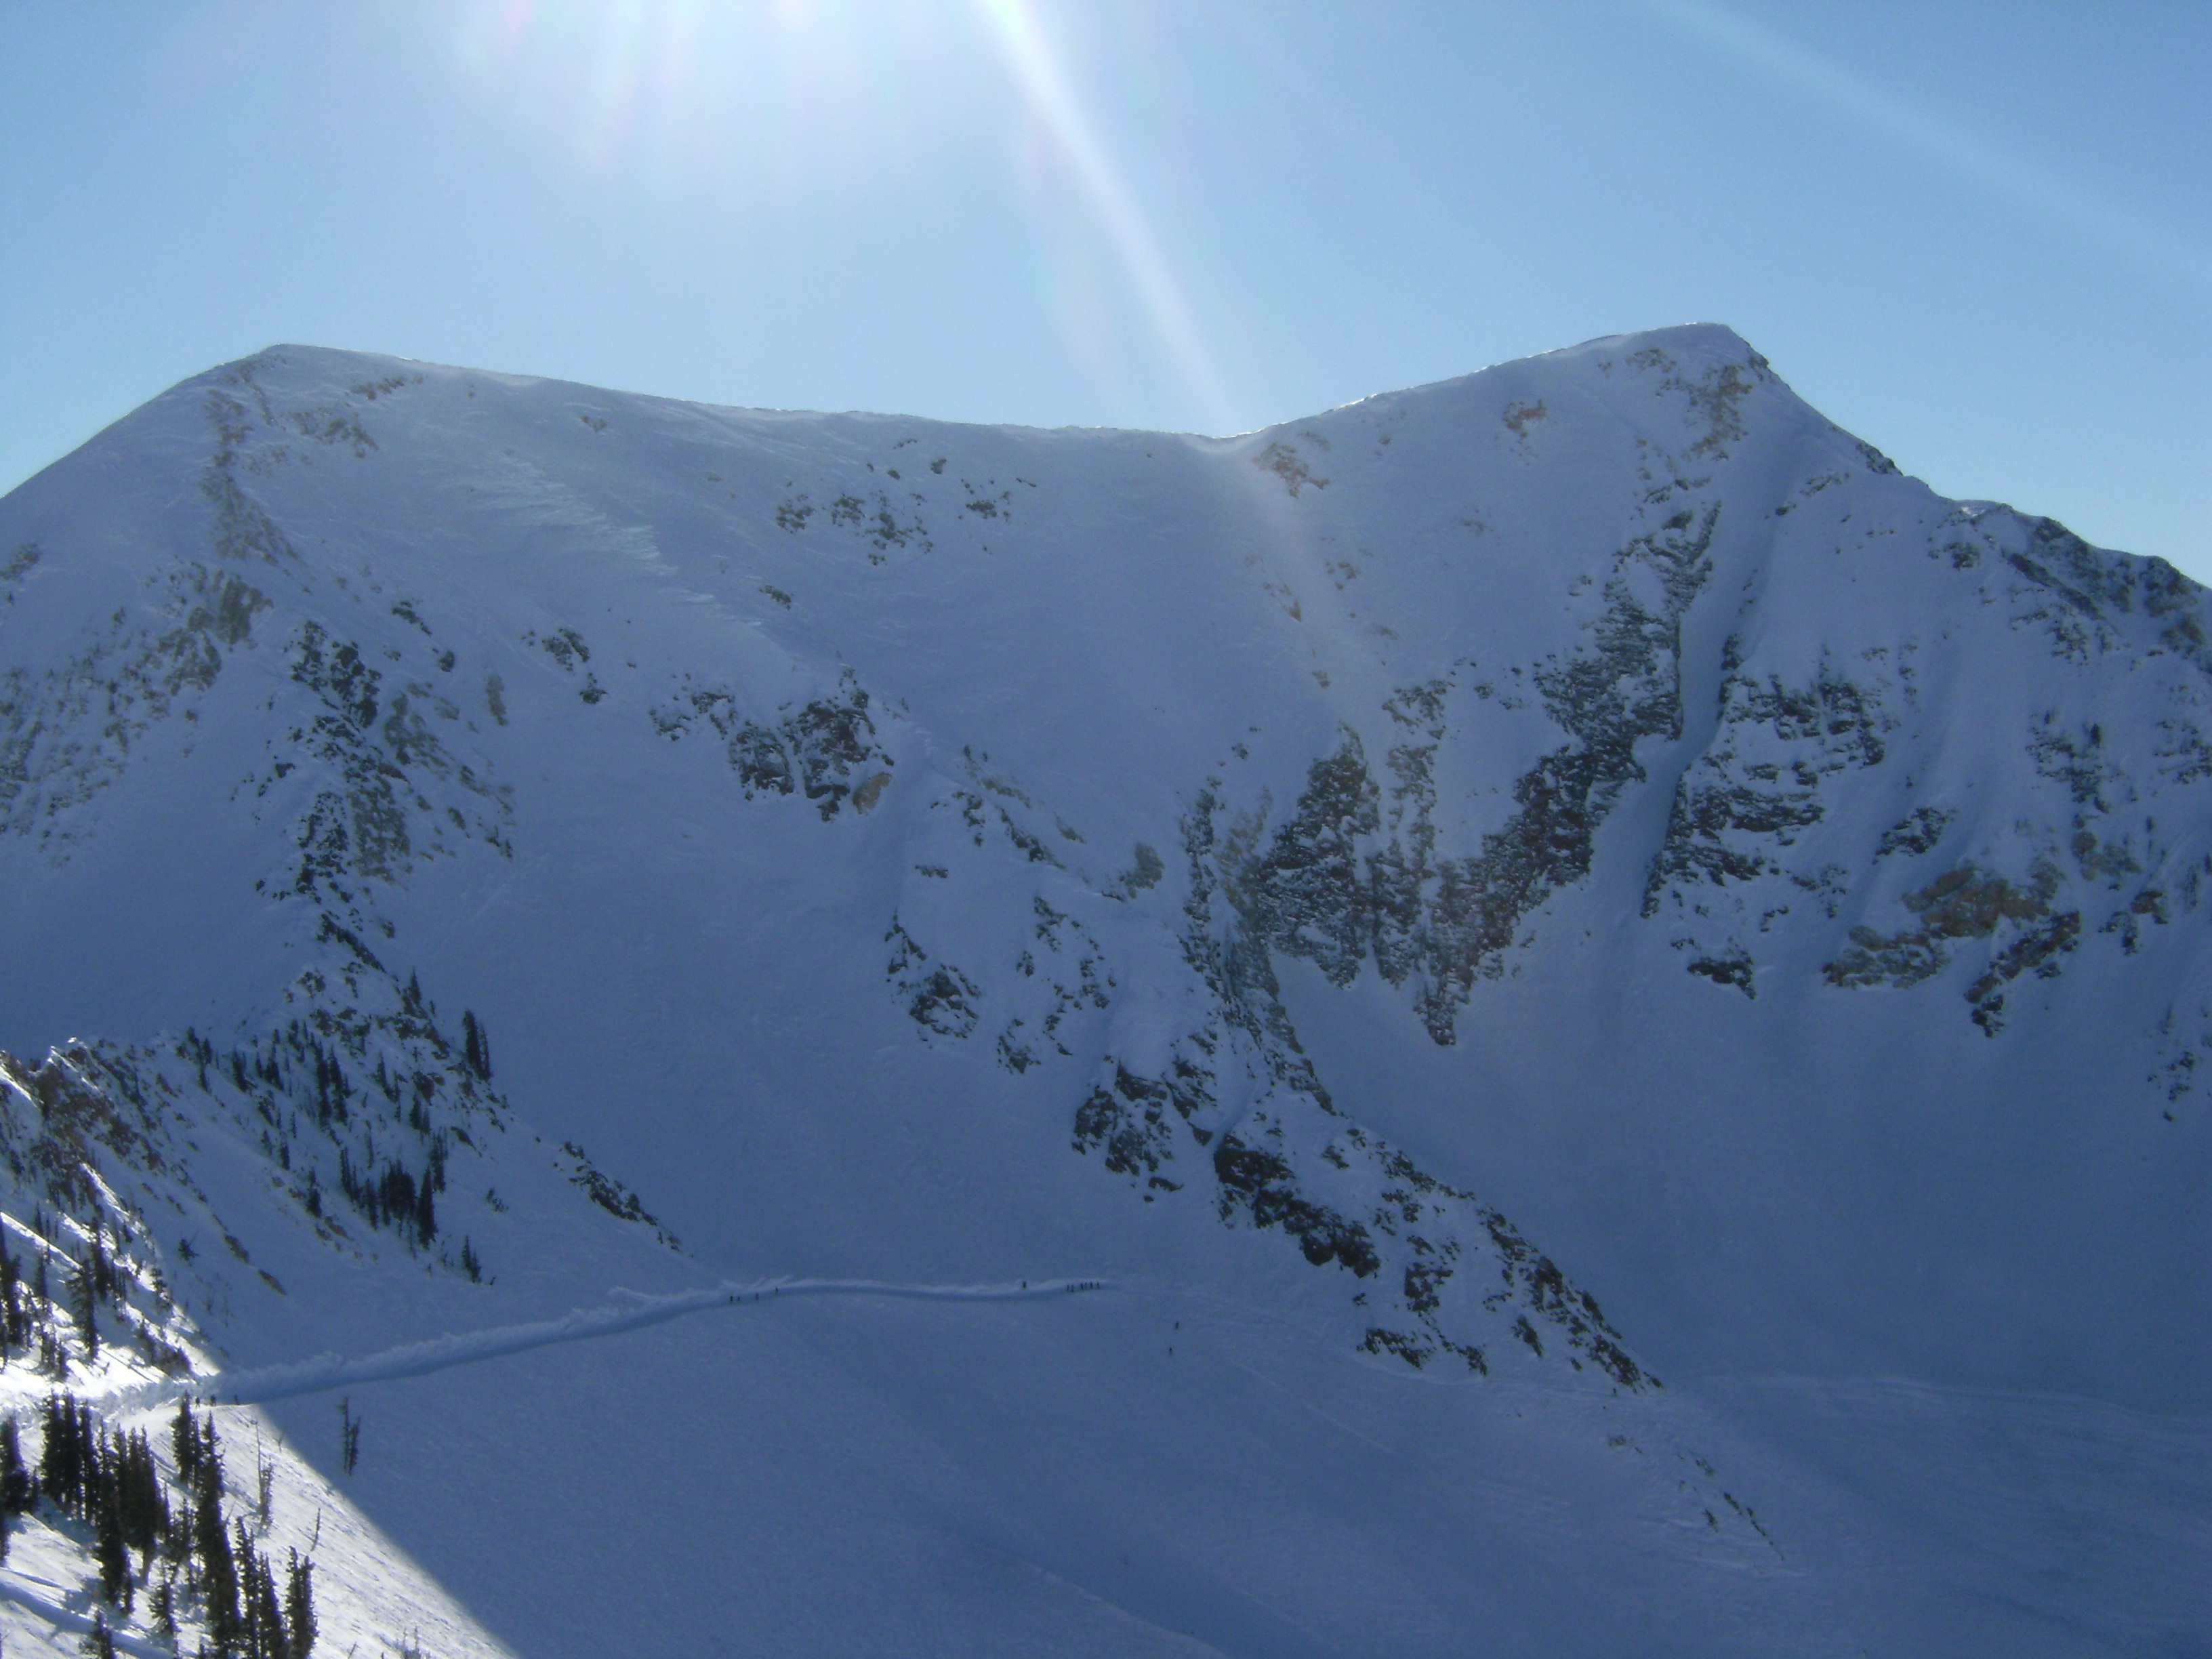 Getting Ready to drop in., Snowbird